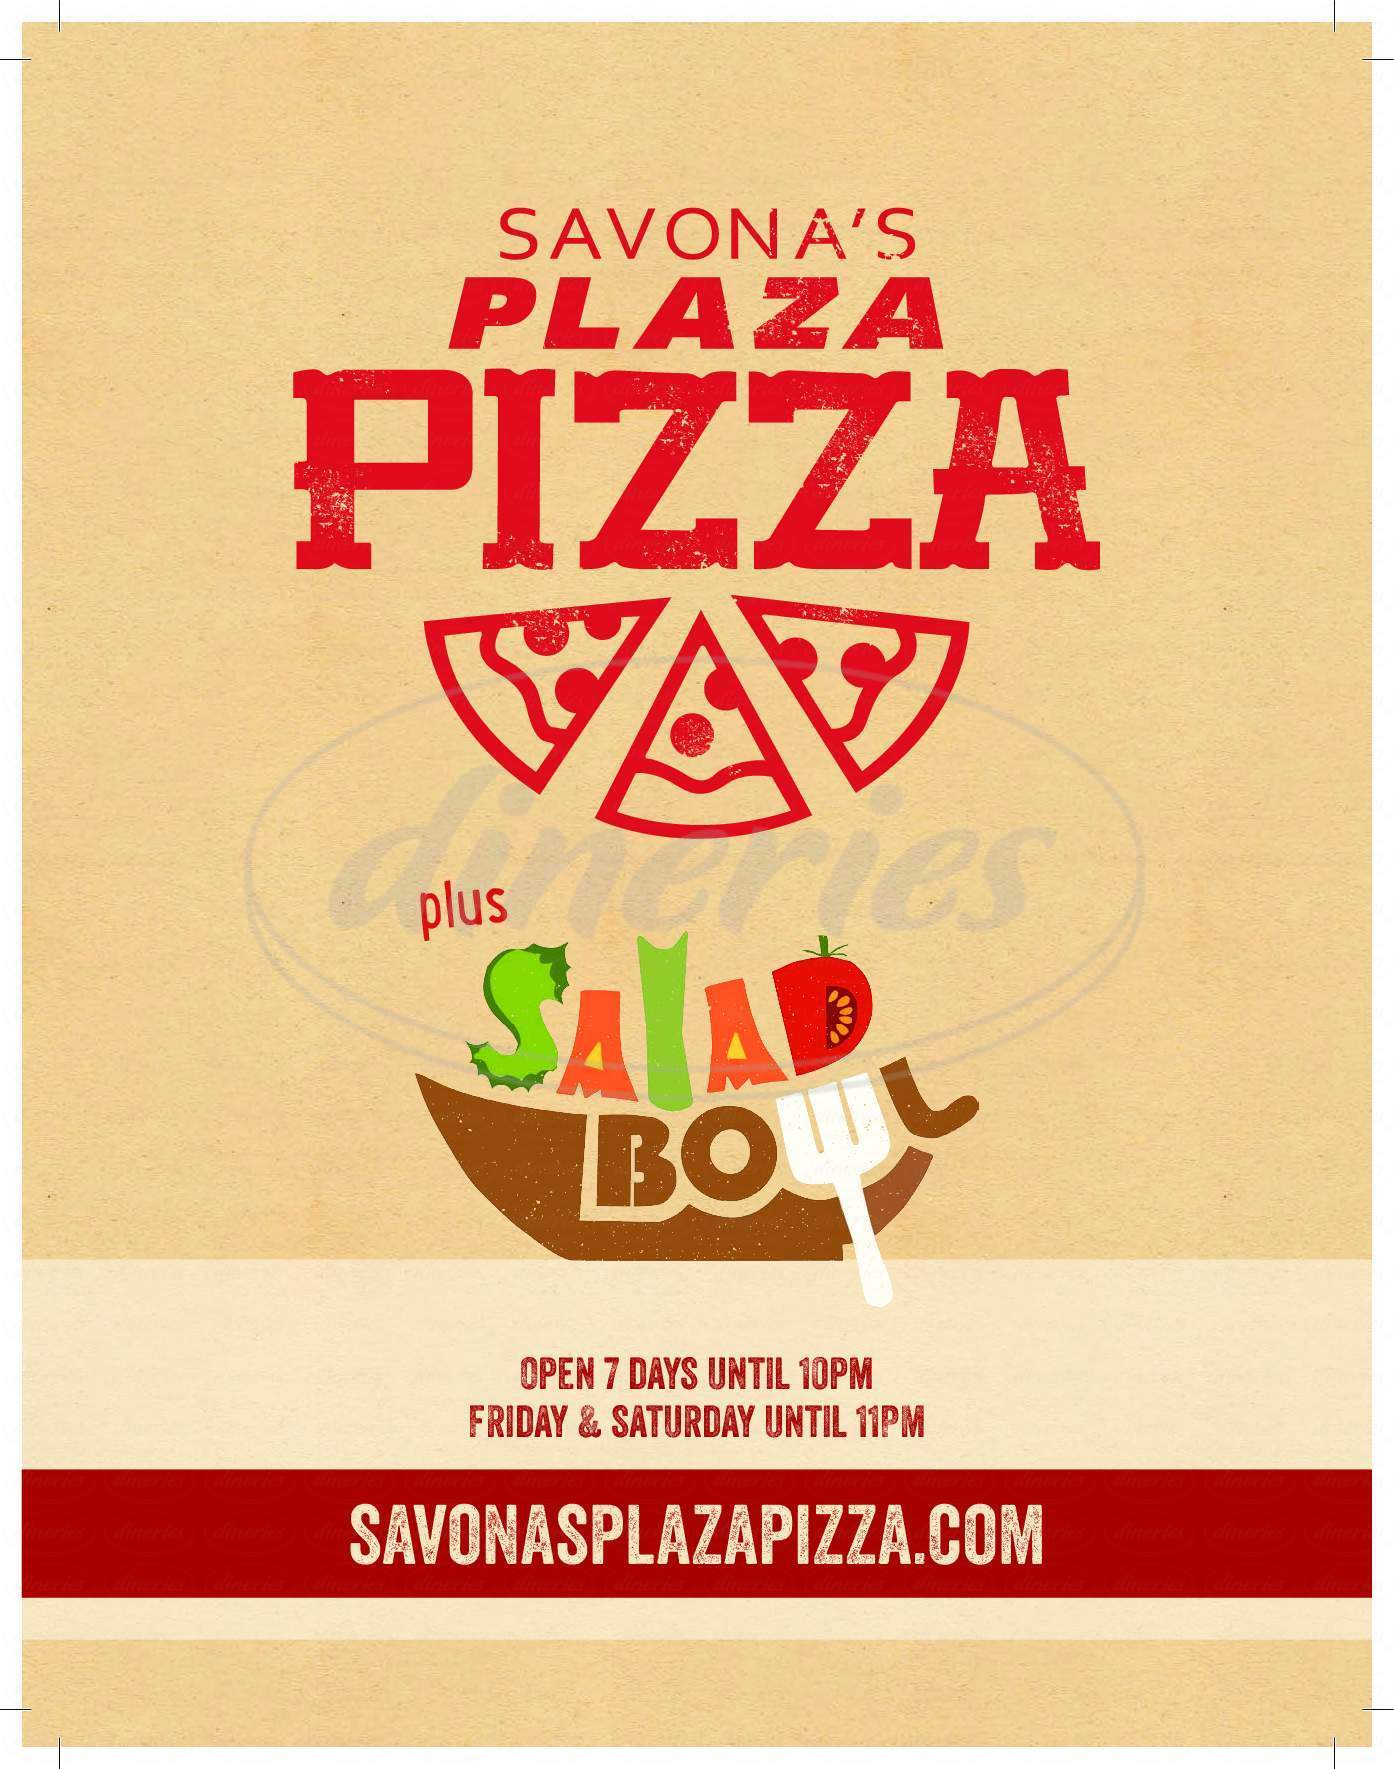 menu for Savona's Plaza Pizza